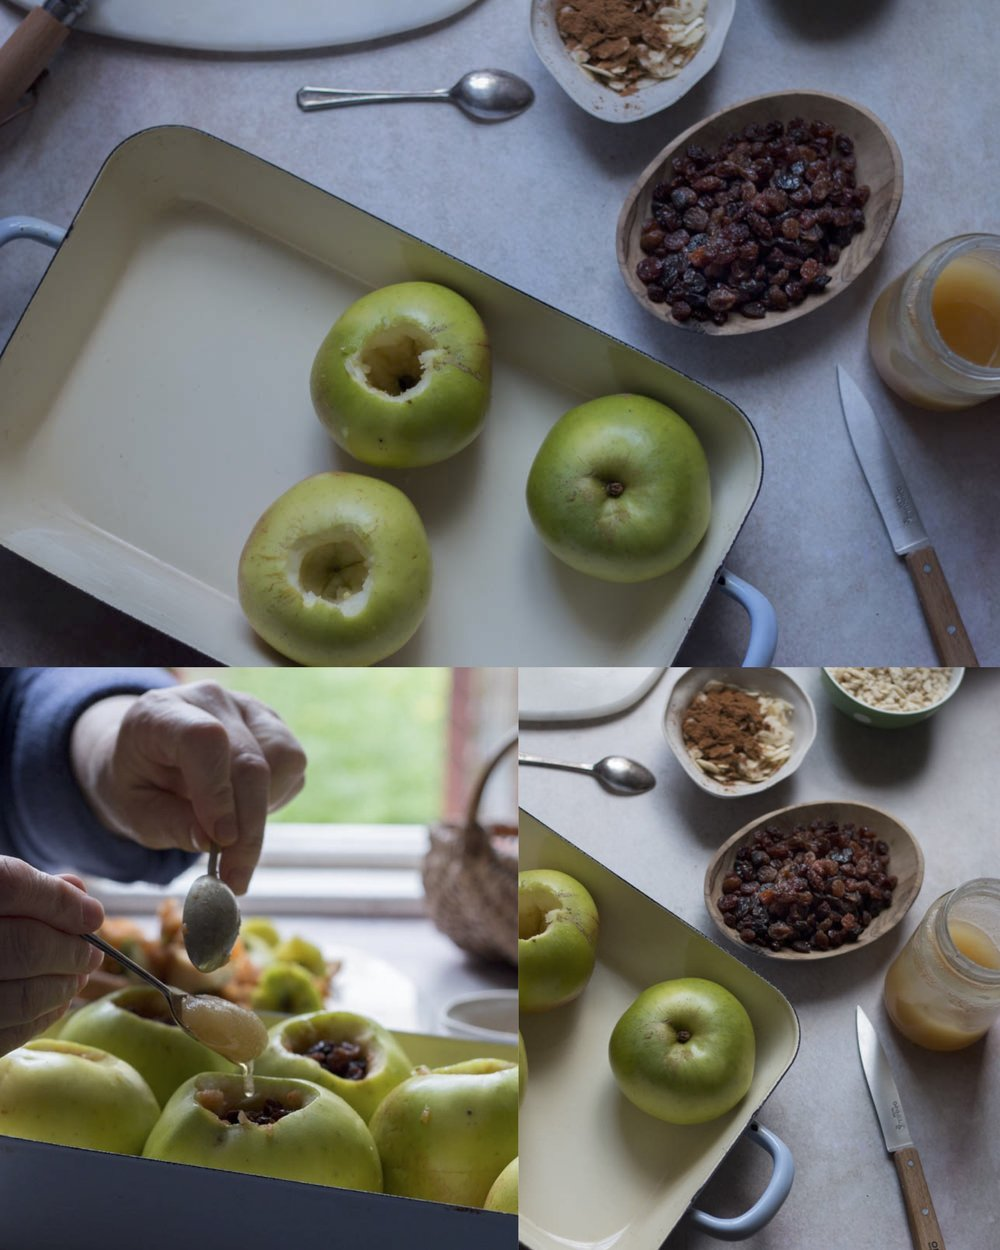 Baked apple recipe by Jette Virdi, recipe creator and stylist based in London and Dublin